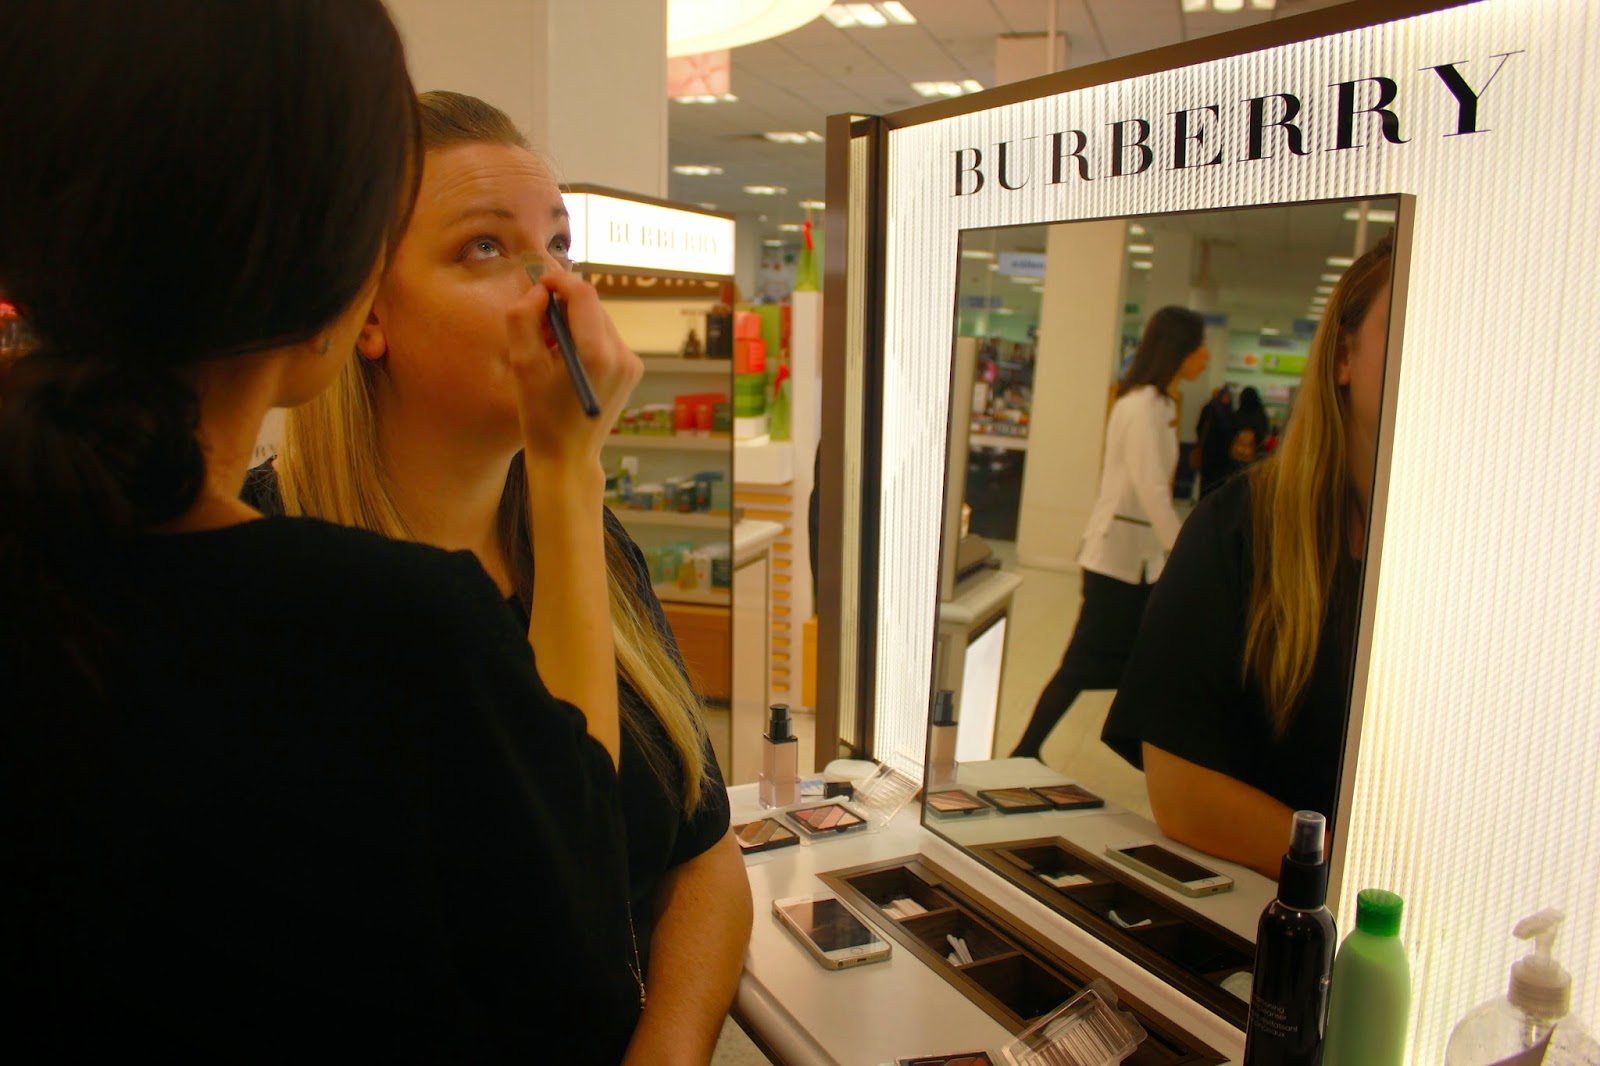 Burberry Launch at Meadowhall